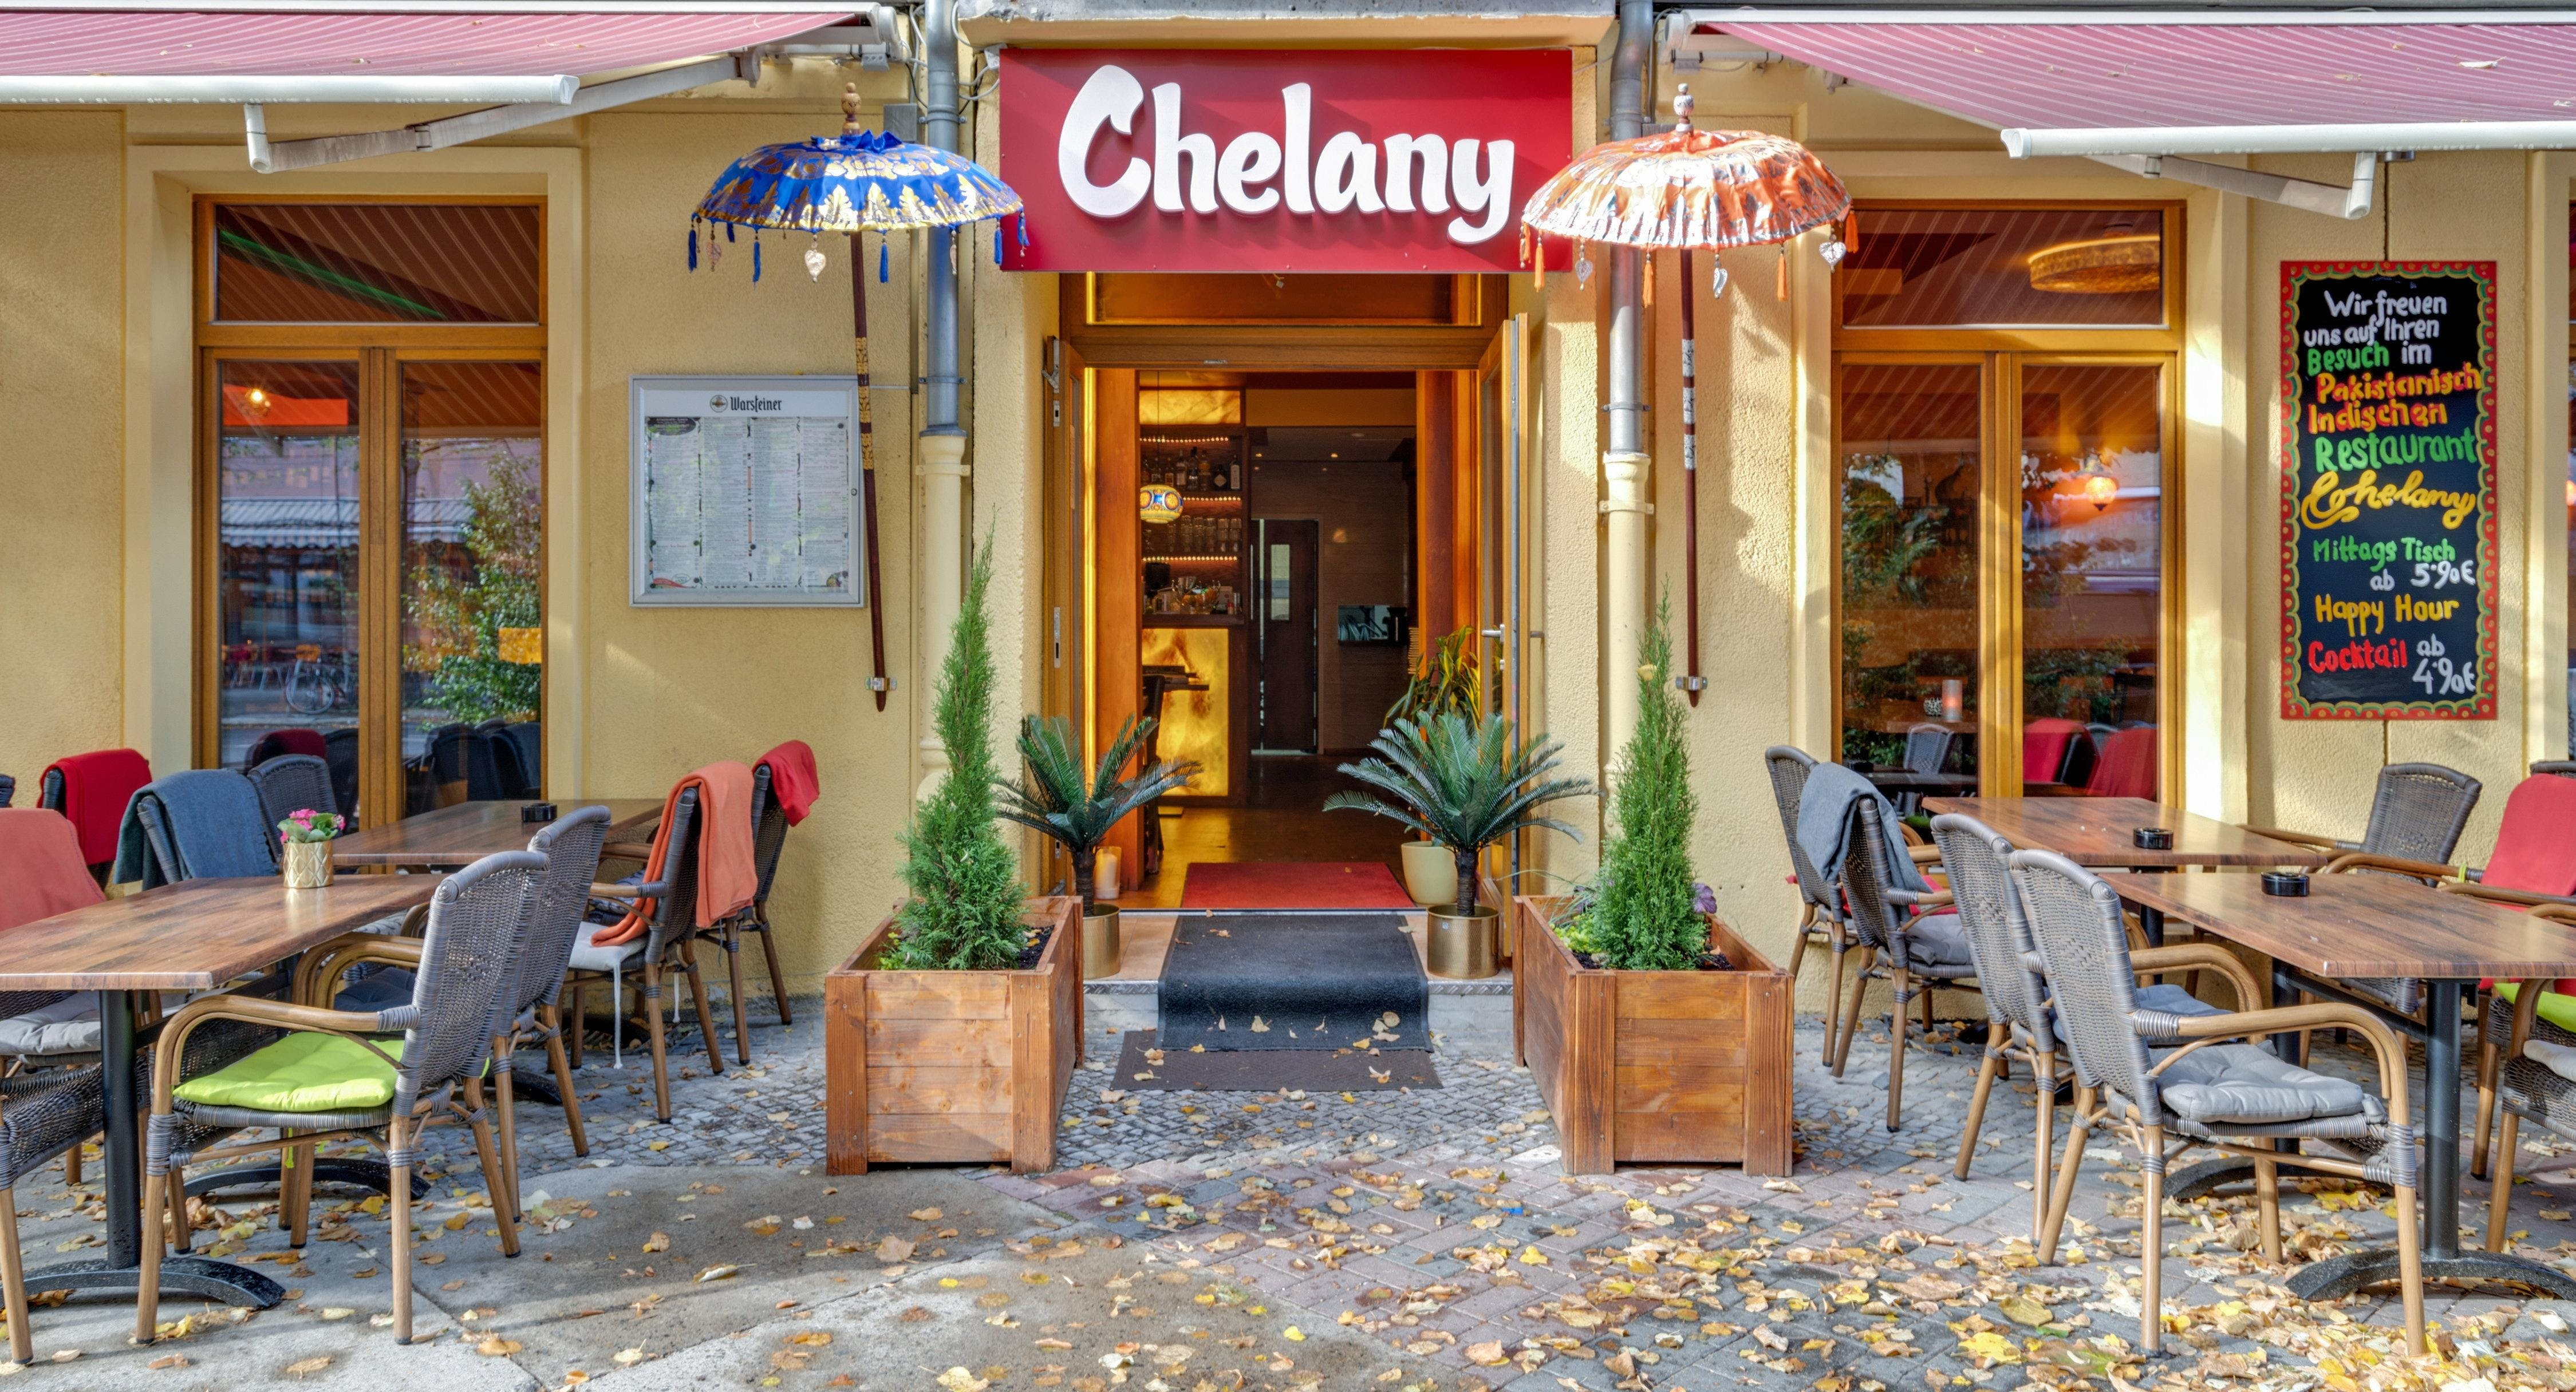 Chelany Mitte Berlin image 2